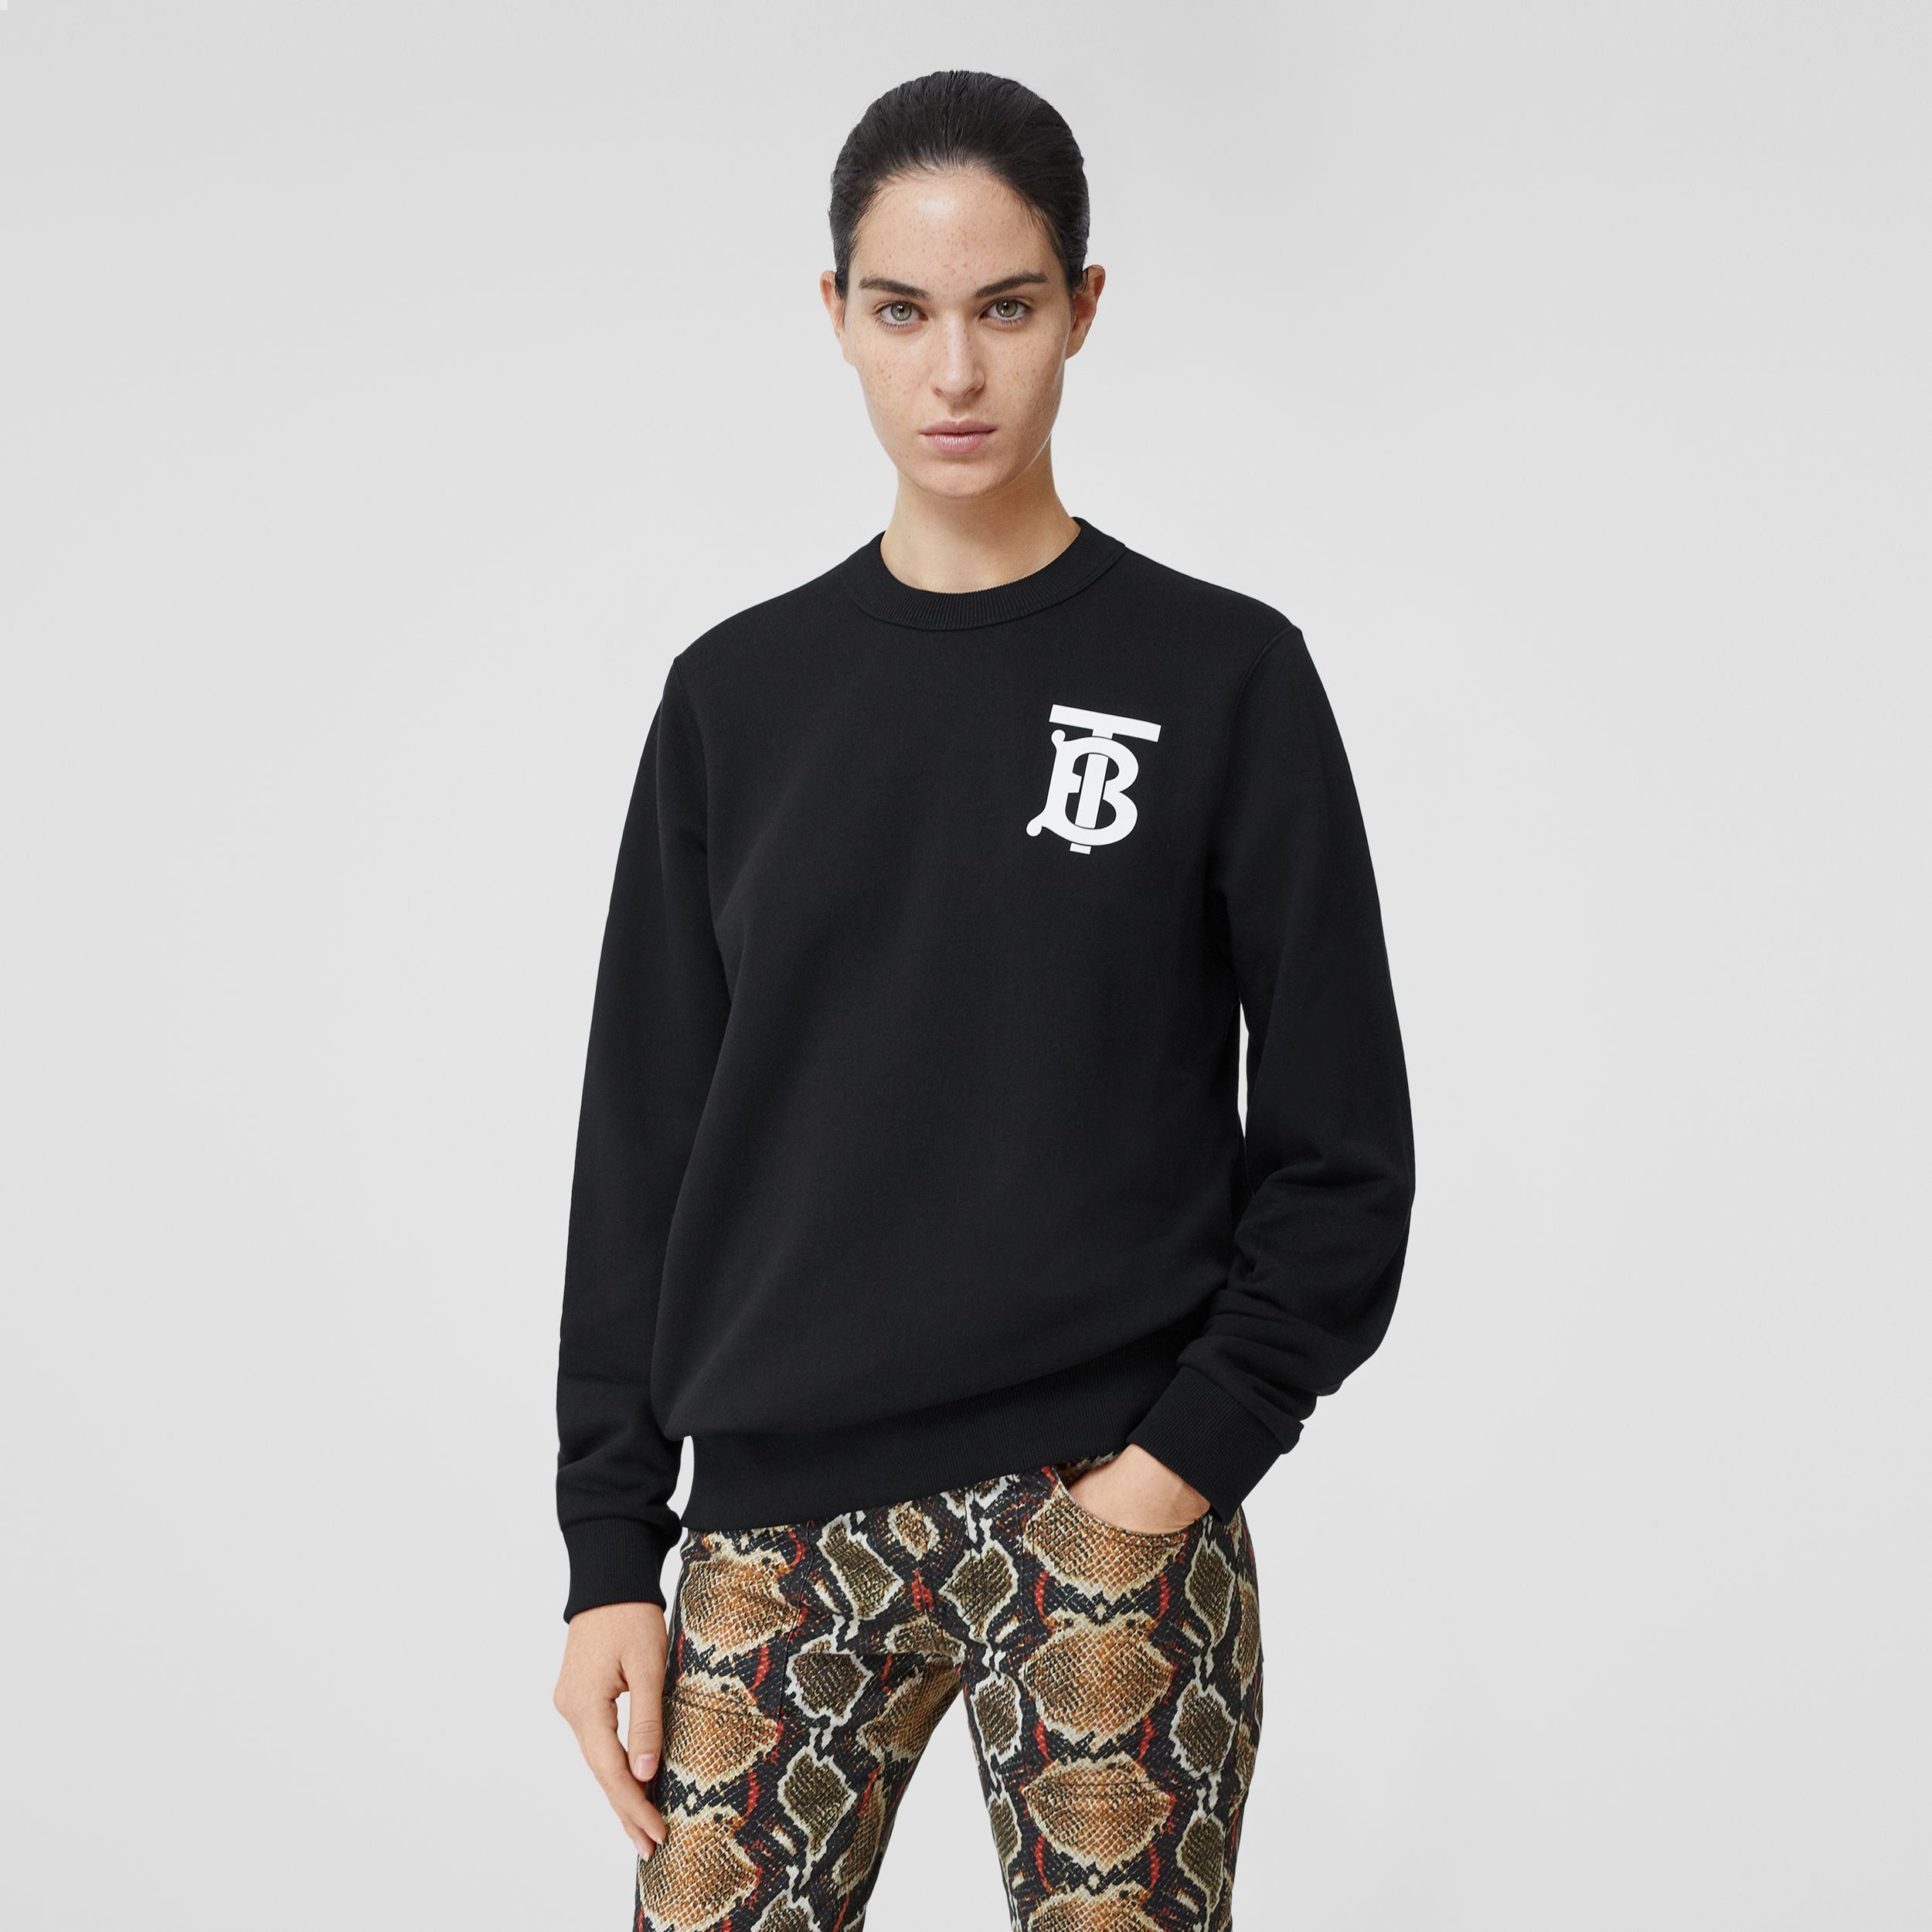 Monogram Motif Cotton Sweatshirt in Black - Women | Burberry - 1